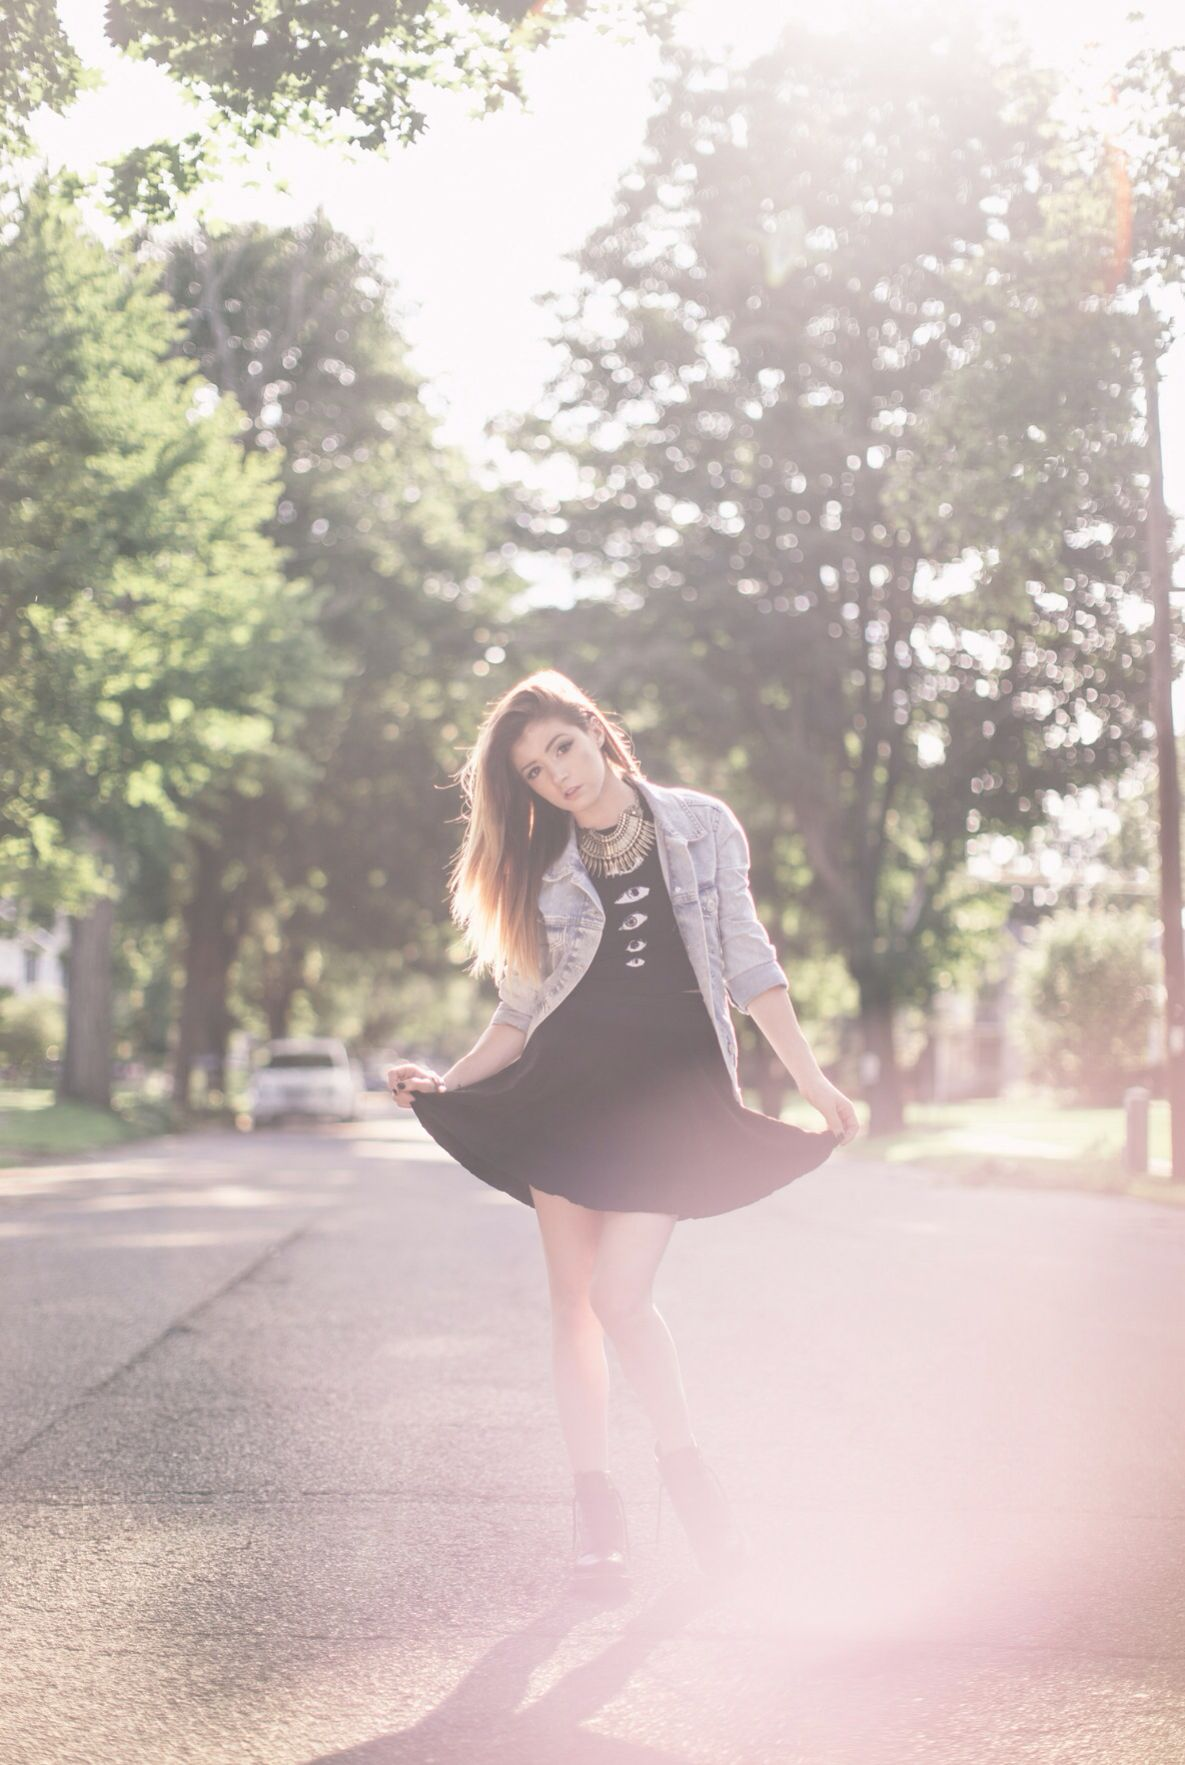 Chrissy Costanza.. Nice background xD